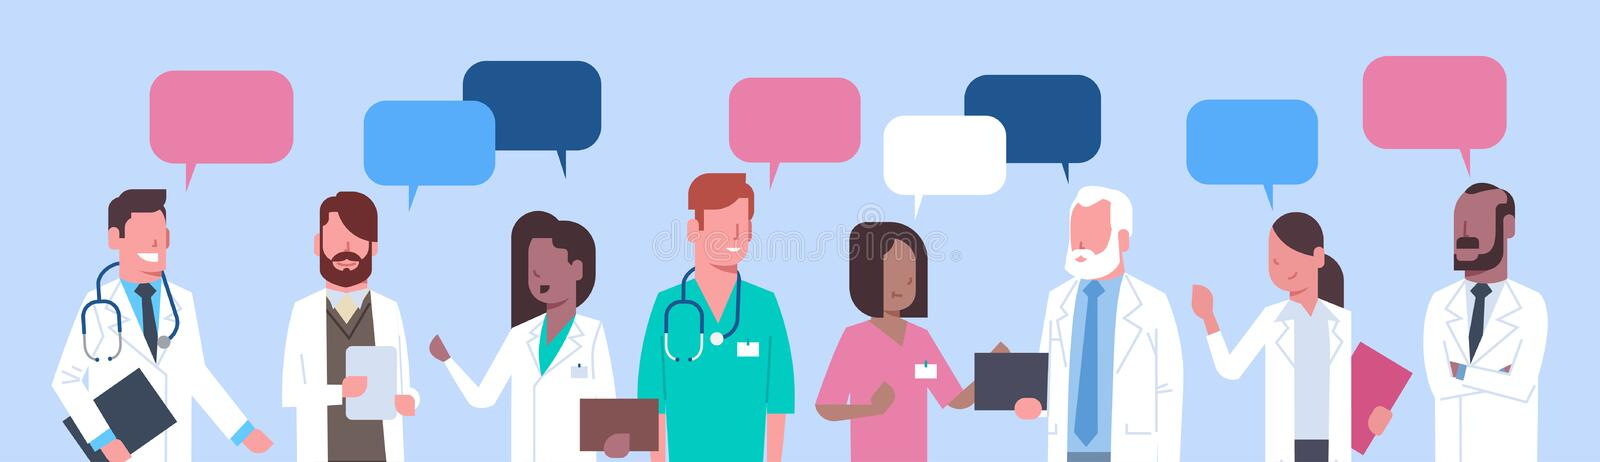 Group Of Medical Doctors Standing Chat Bubble Treatment Social Network Concept. Flat Vector Illustration vector illustration